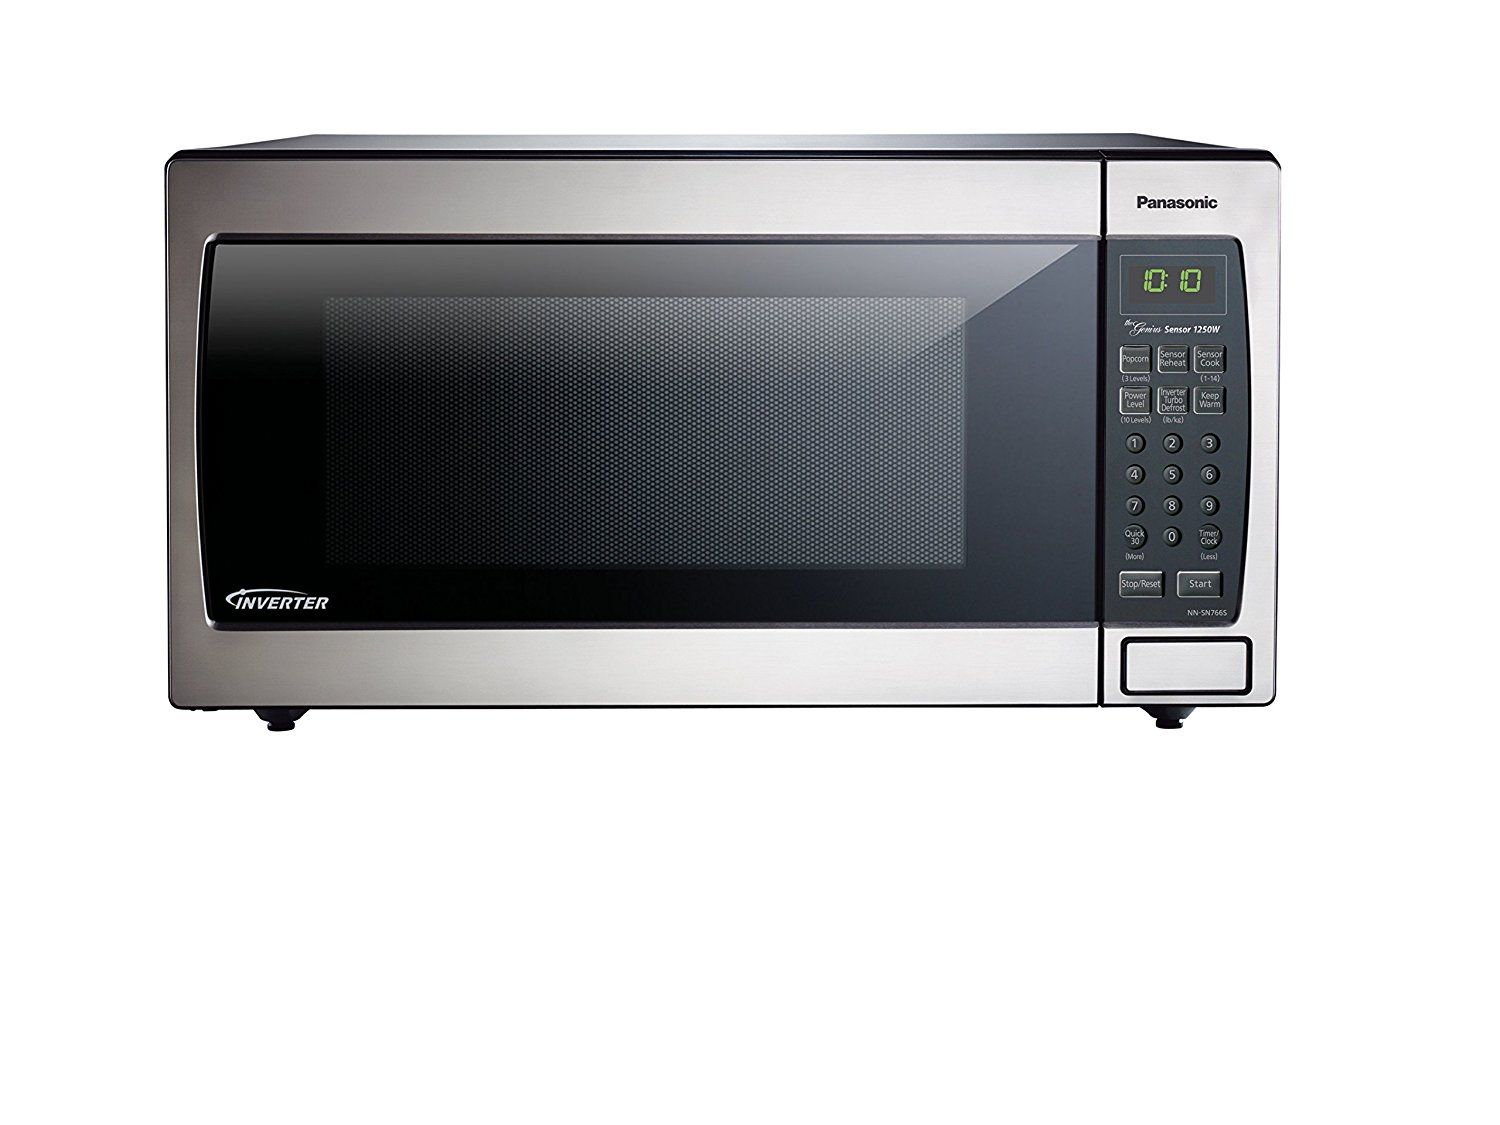 Panasonic Nn Sn766s Countertop Built In Microwave With Inverter